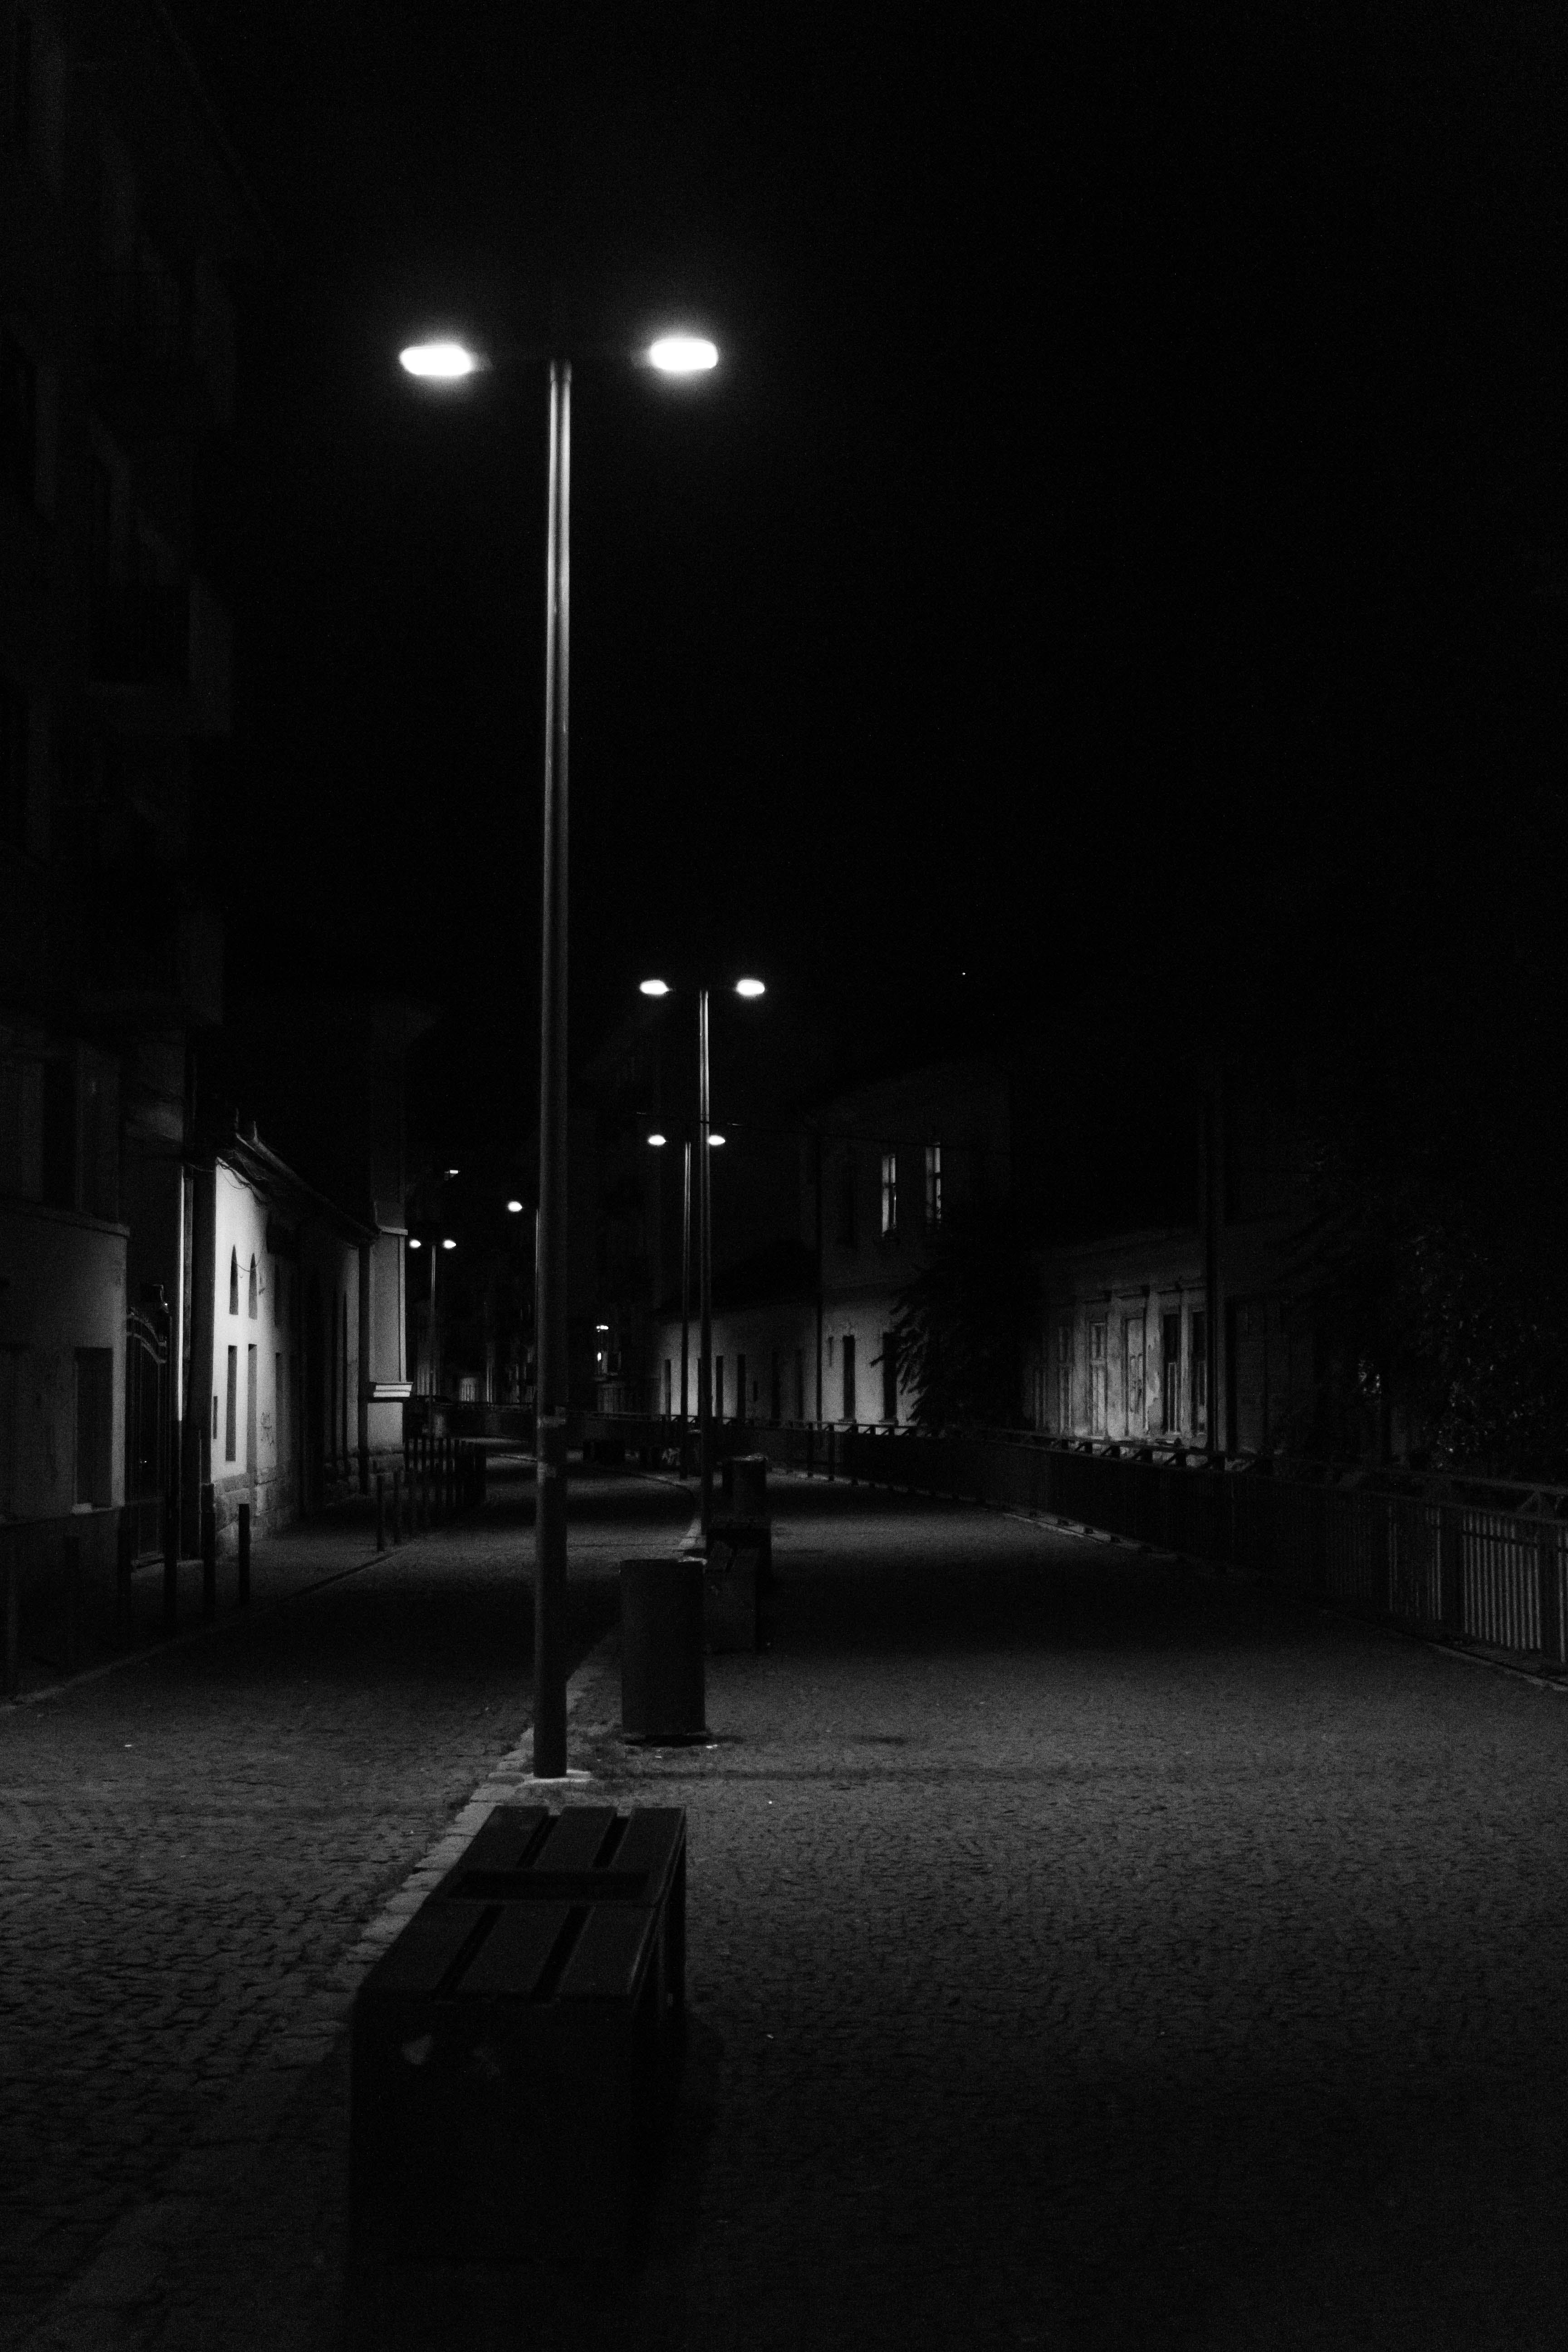 Grayscale Photography of Street Lights Along the Road Between Houses